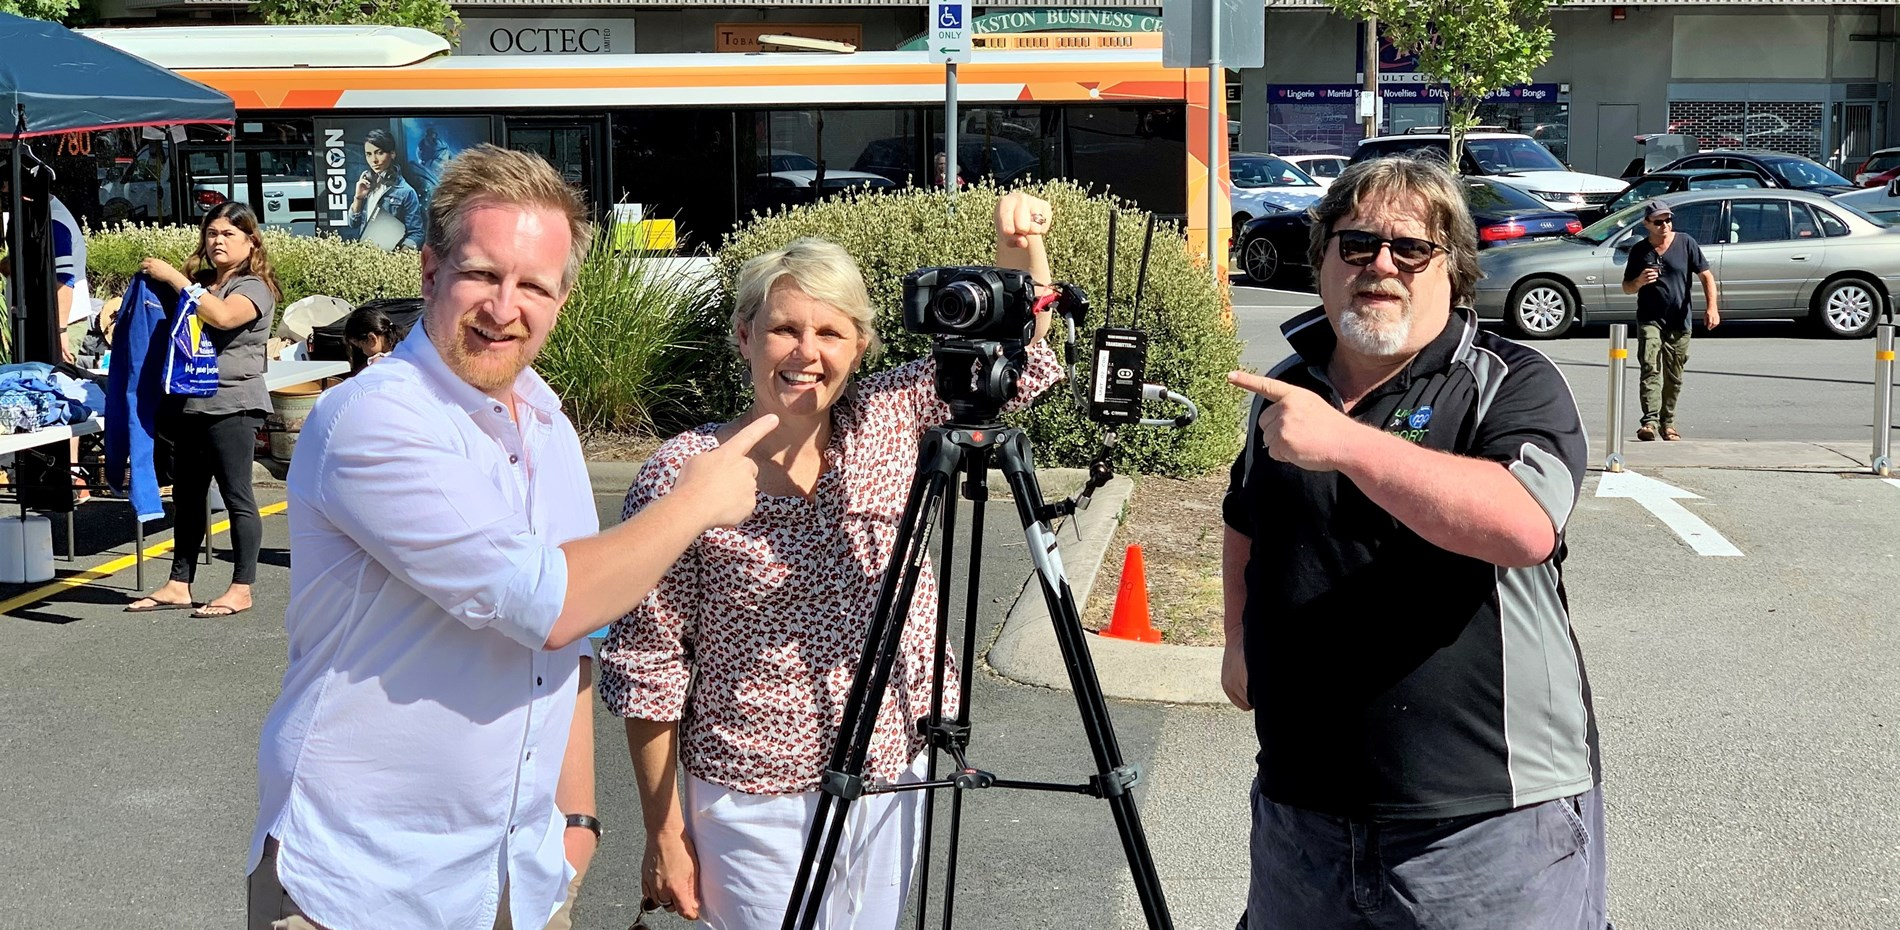 MEDIA RELEASE - LOCAL RADIO STATION GETS FUNDING BOOST - 16 DECEMBER 2020 Main Image